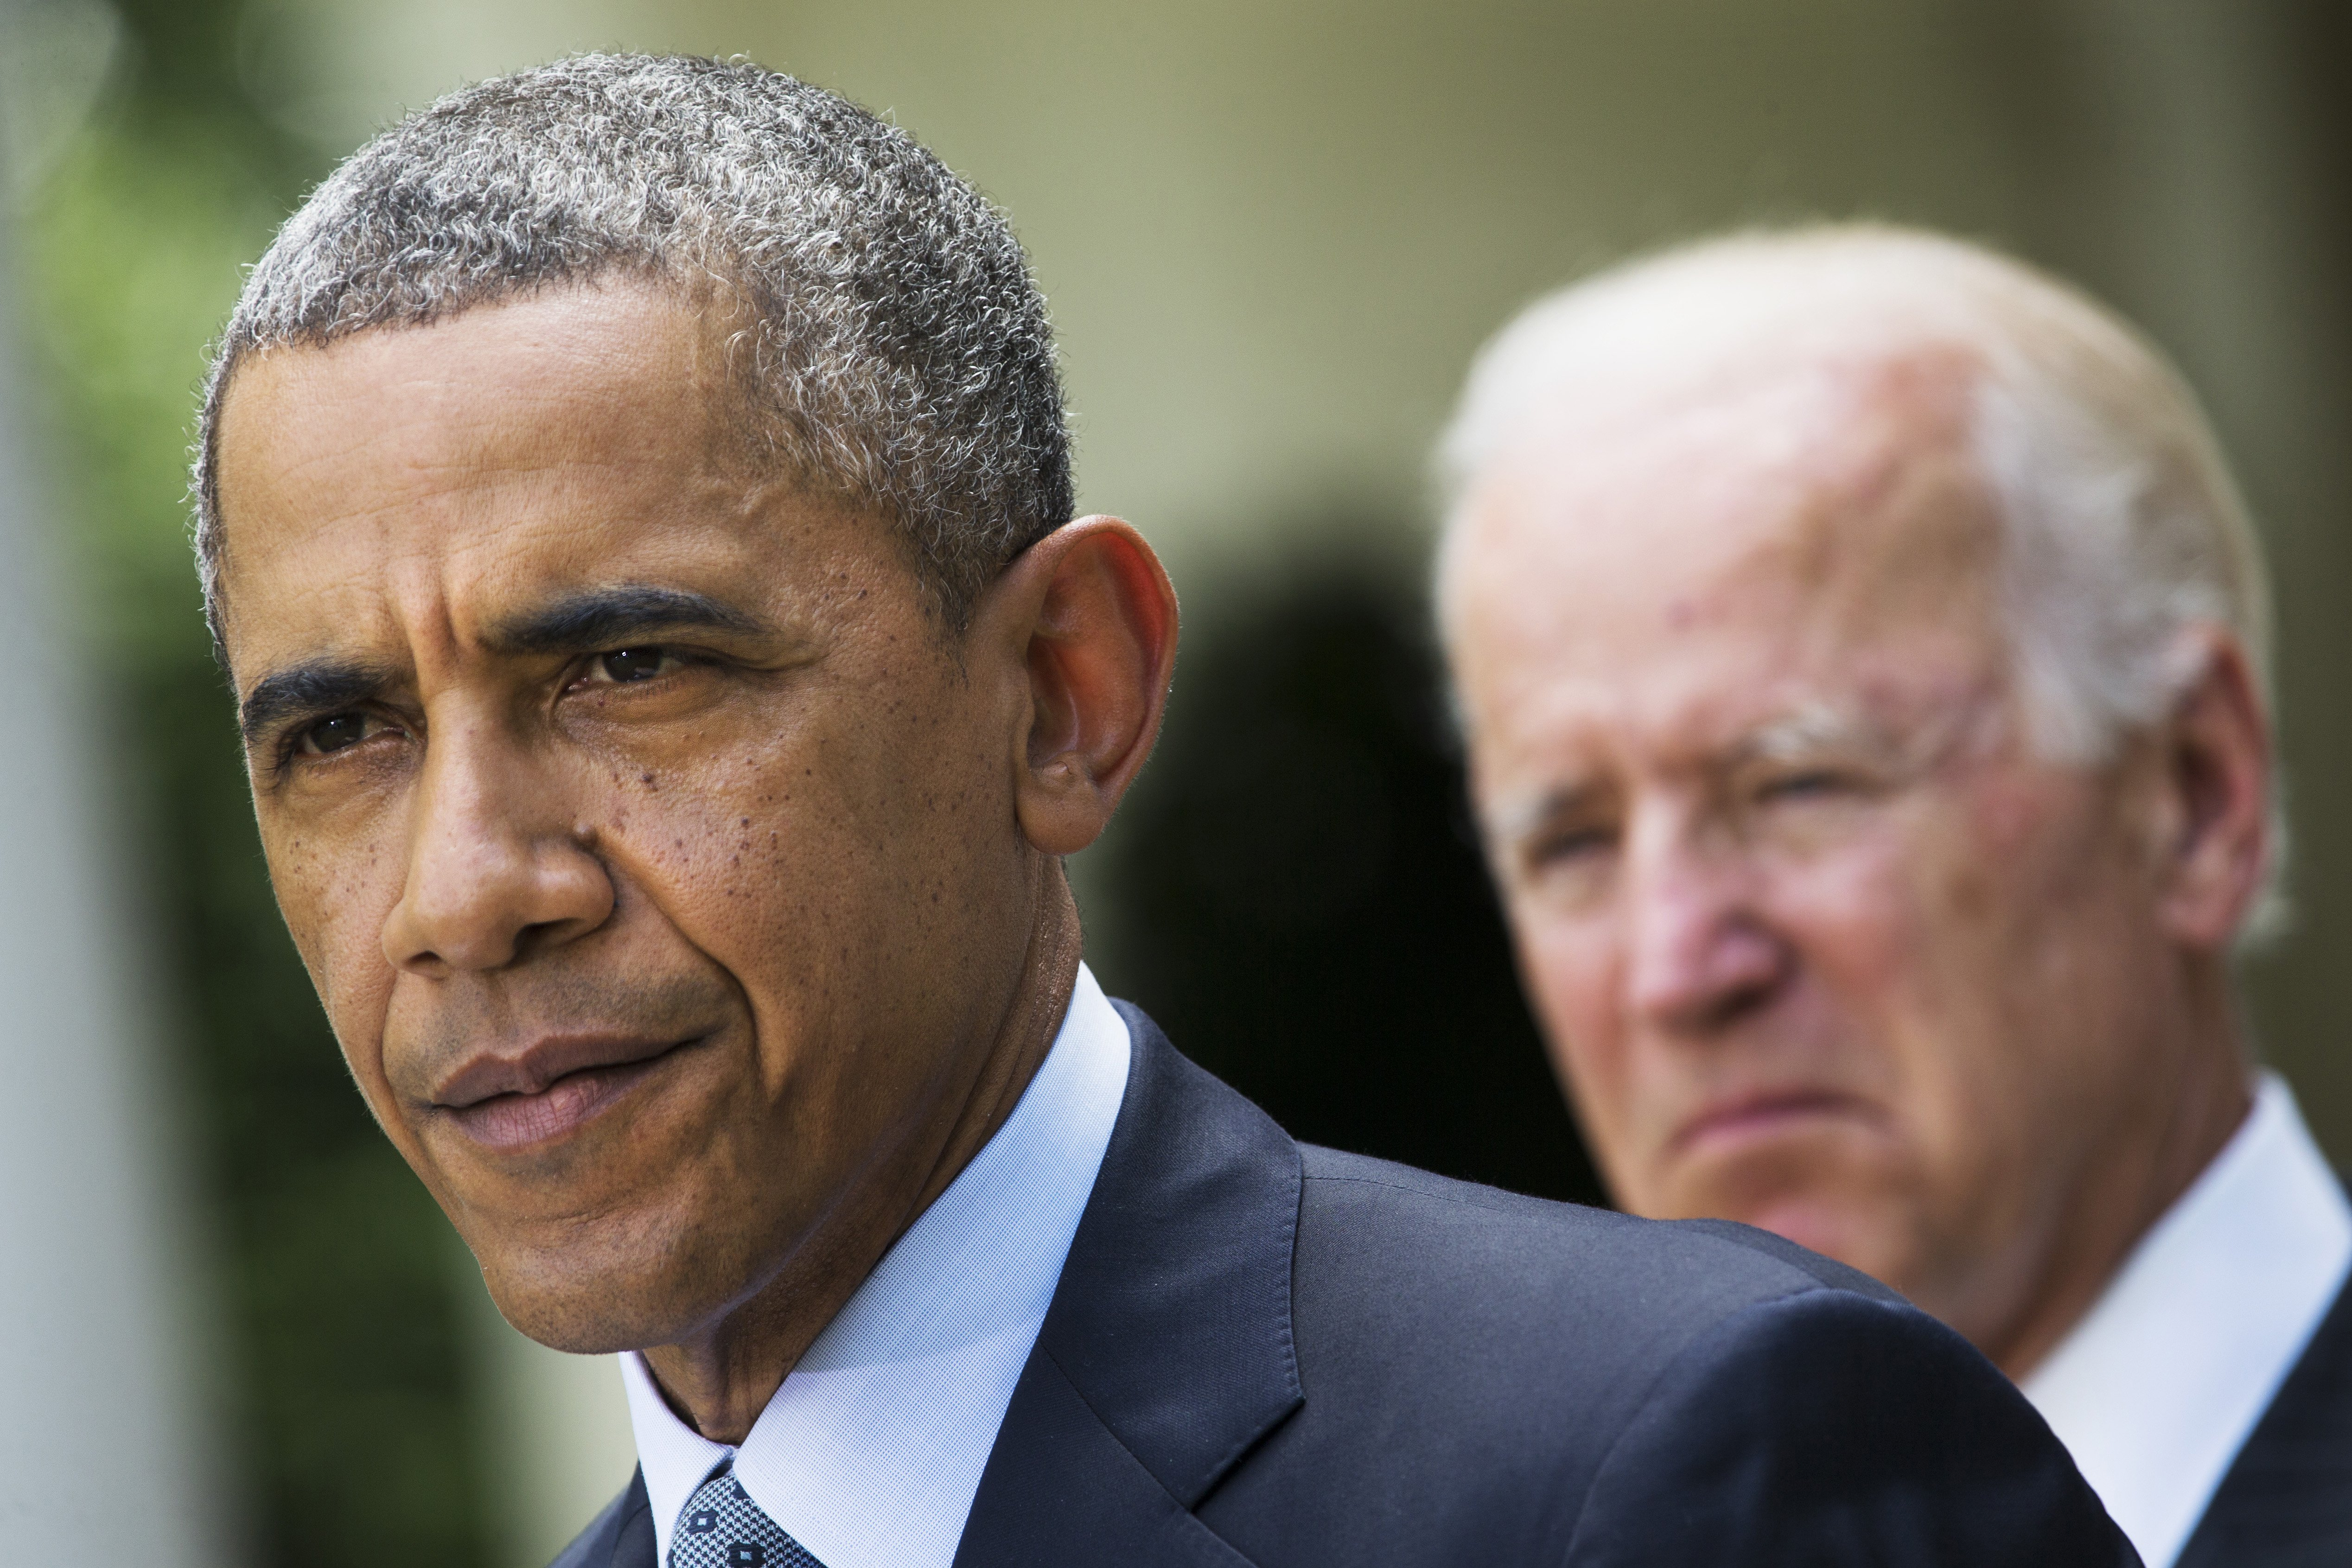 President Barack Obama, accompanied by Vice President Joe Biden, pauses while making a statement about immigration reform, in the Rose Garden of the White House in Washington on June 13, 2014.